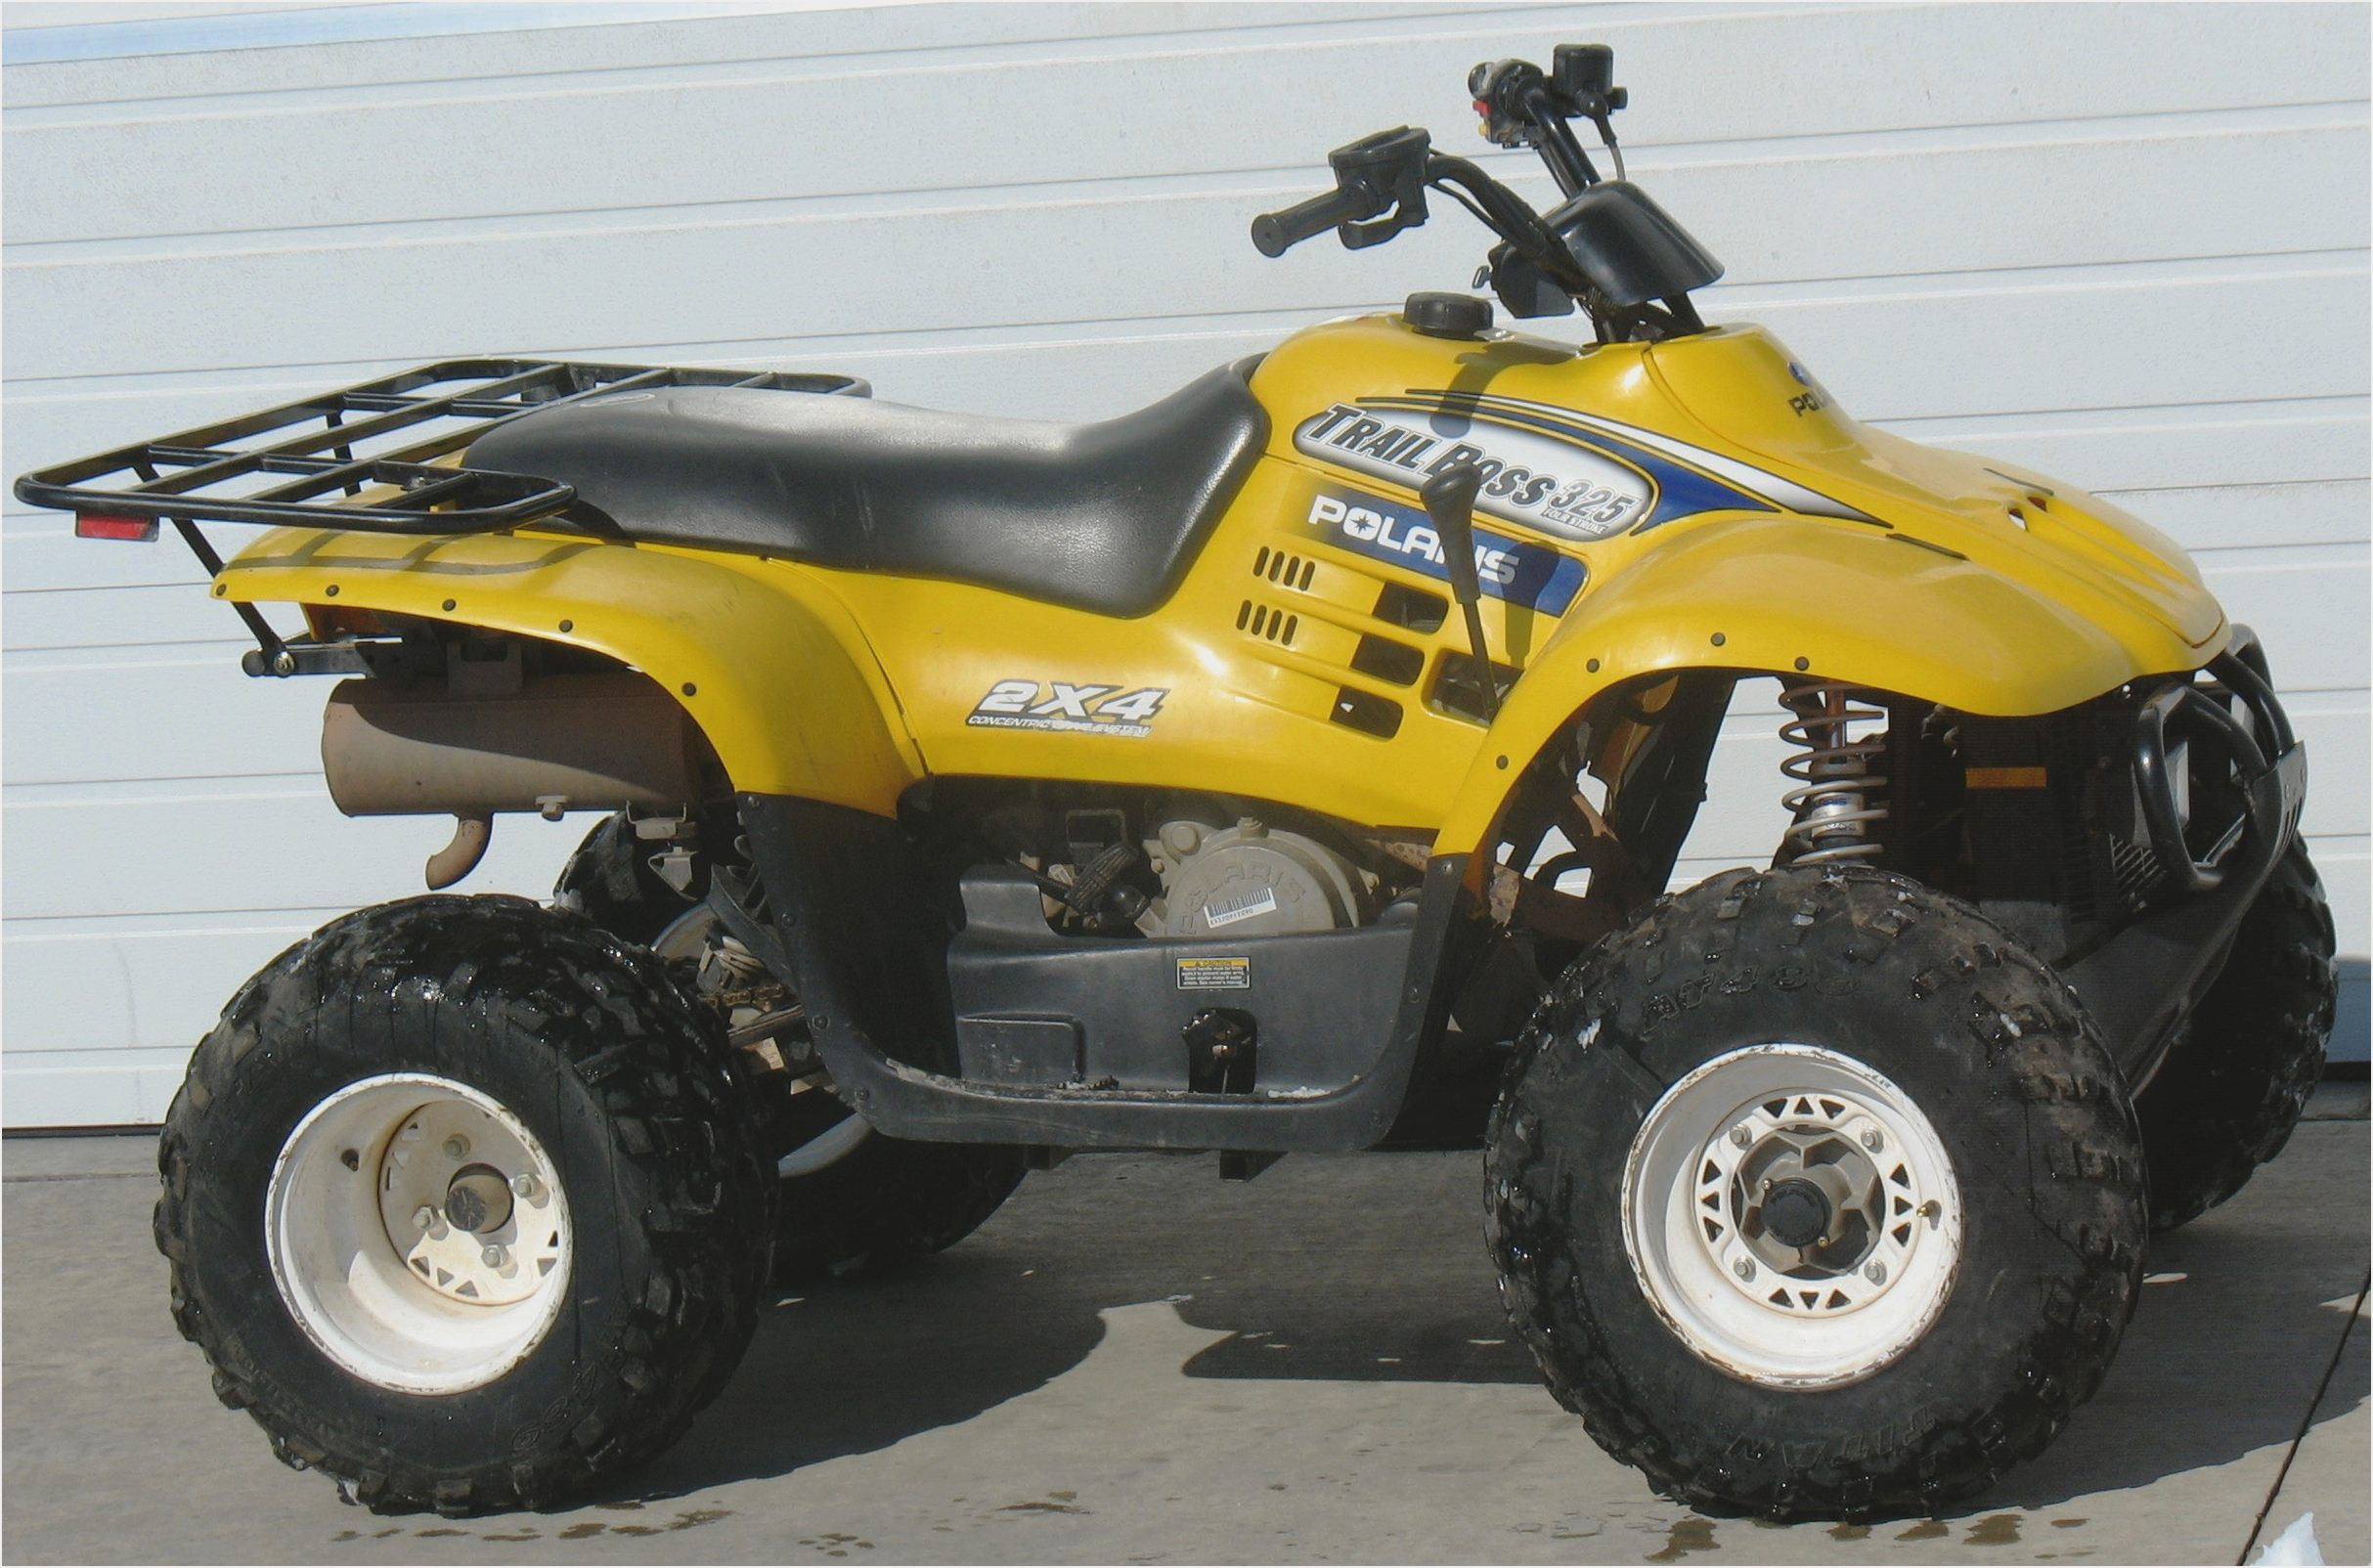 Polaris Trail Boss 330 images #121066 ...